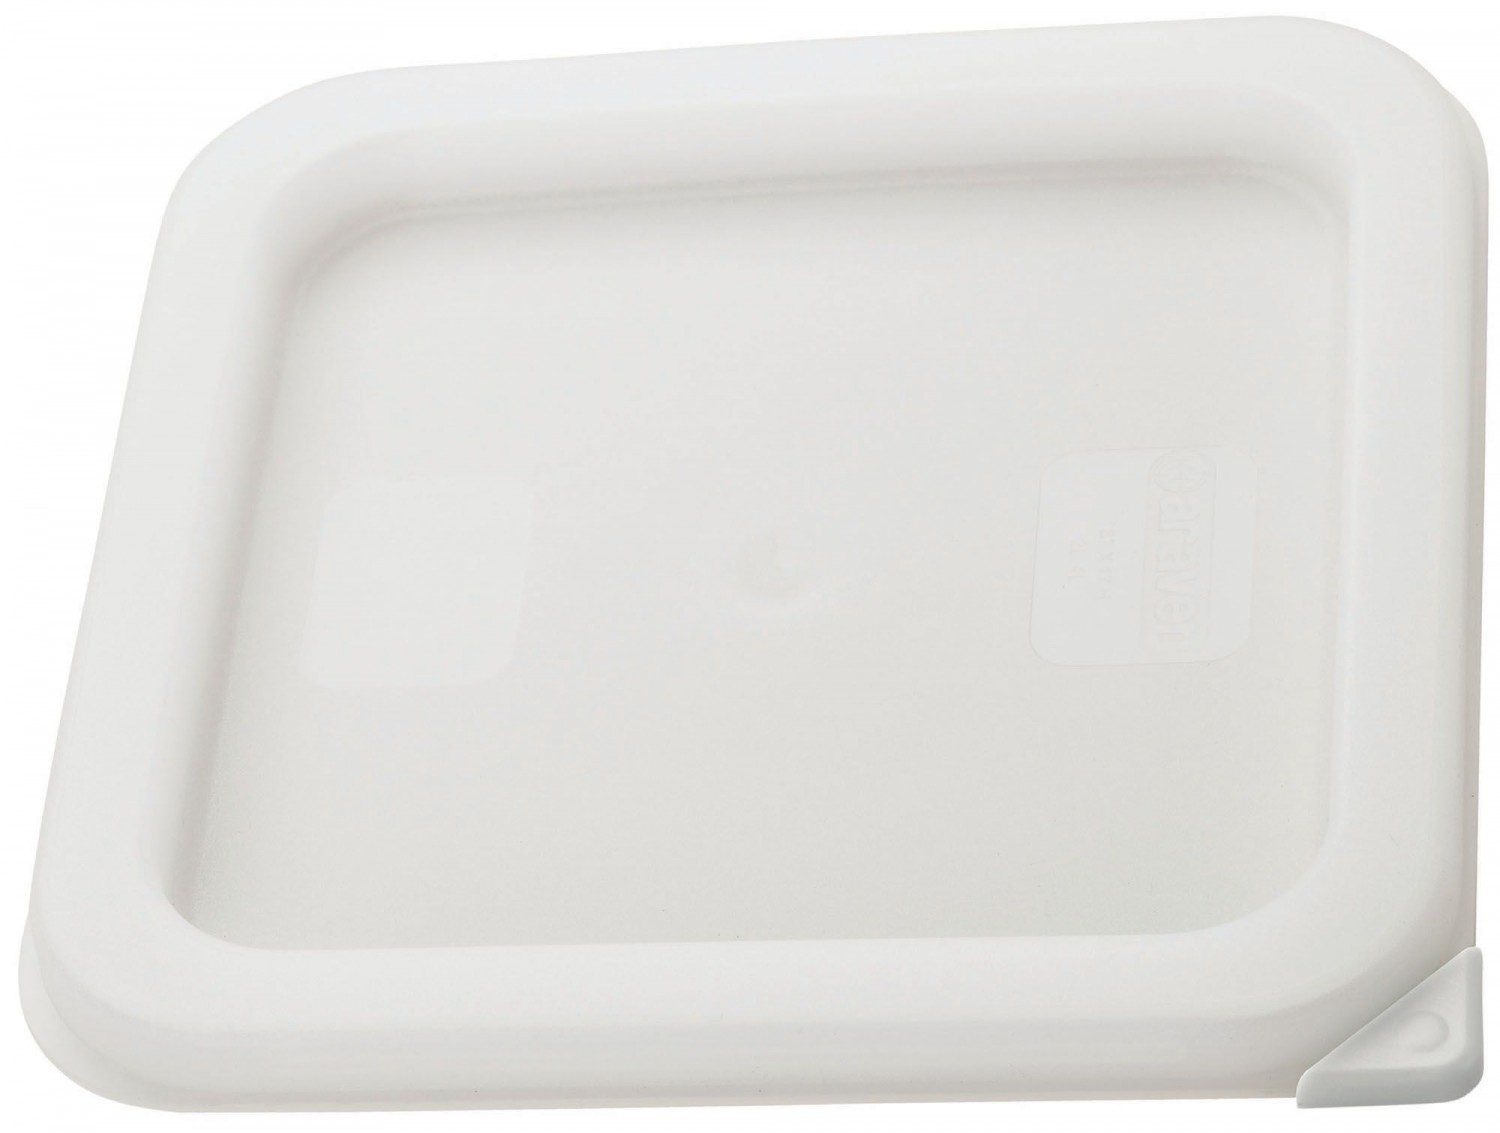 Winco PECC-S White Container Cover, Fits 2 and 4 Qt. Square Storage Containers